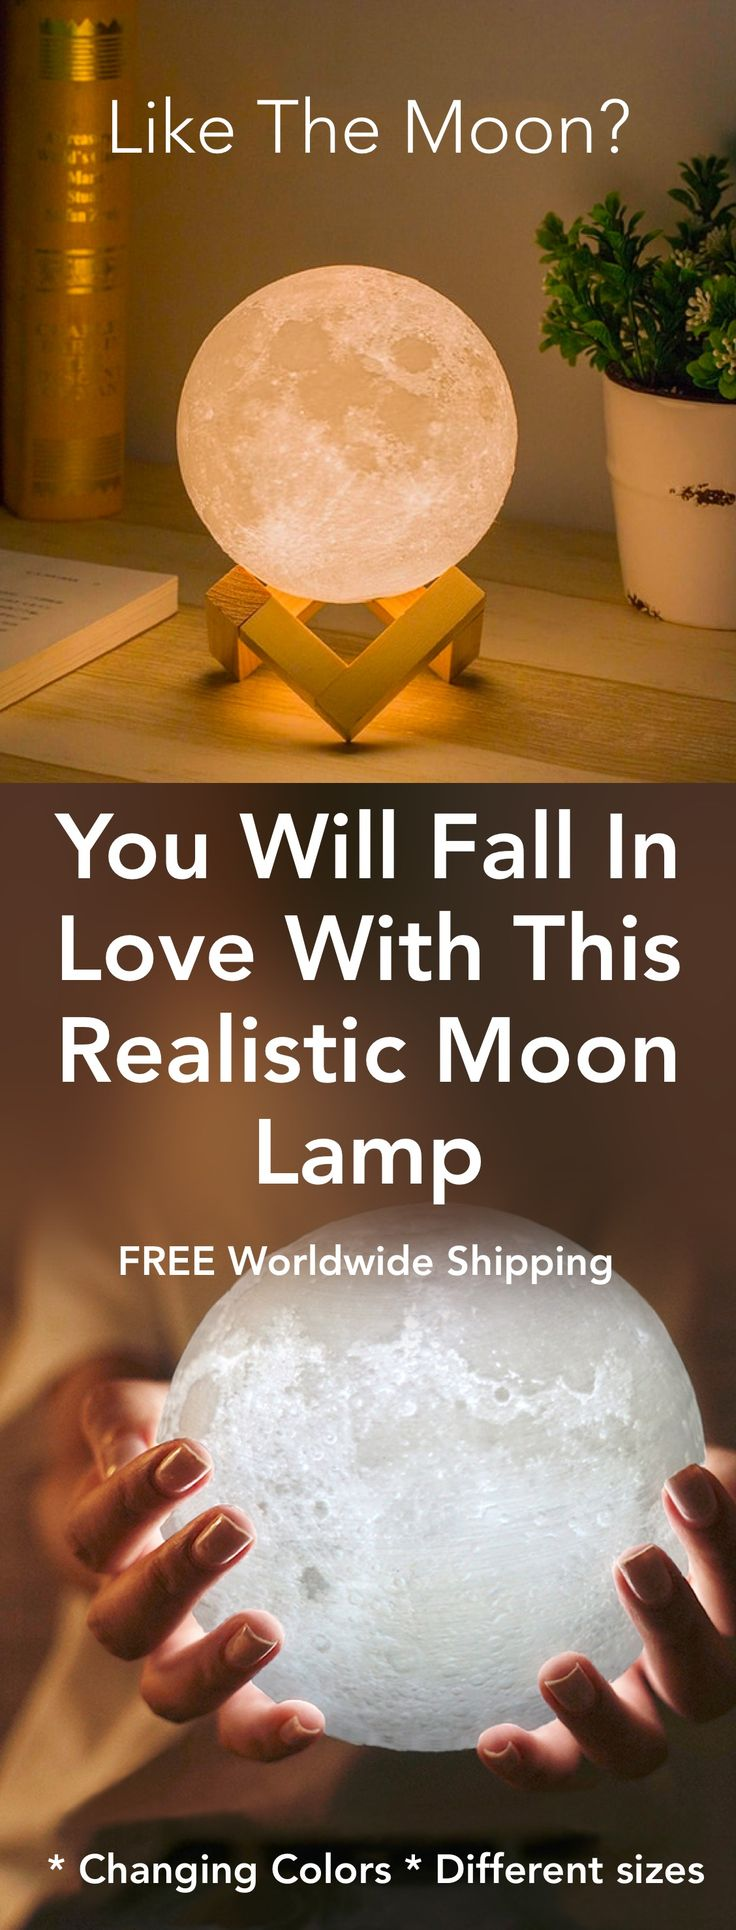 Convey The Moon Into Your House – Lifelike Magical Moon Lamps…